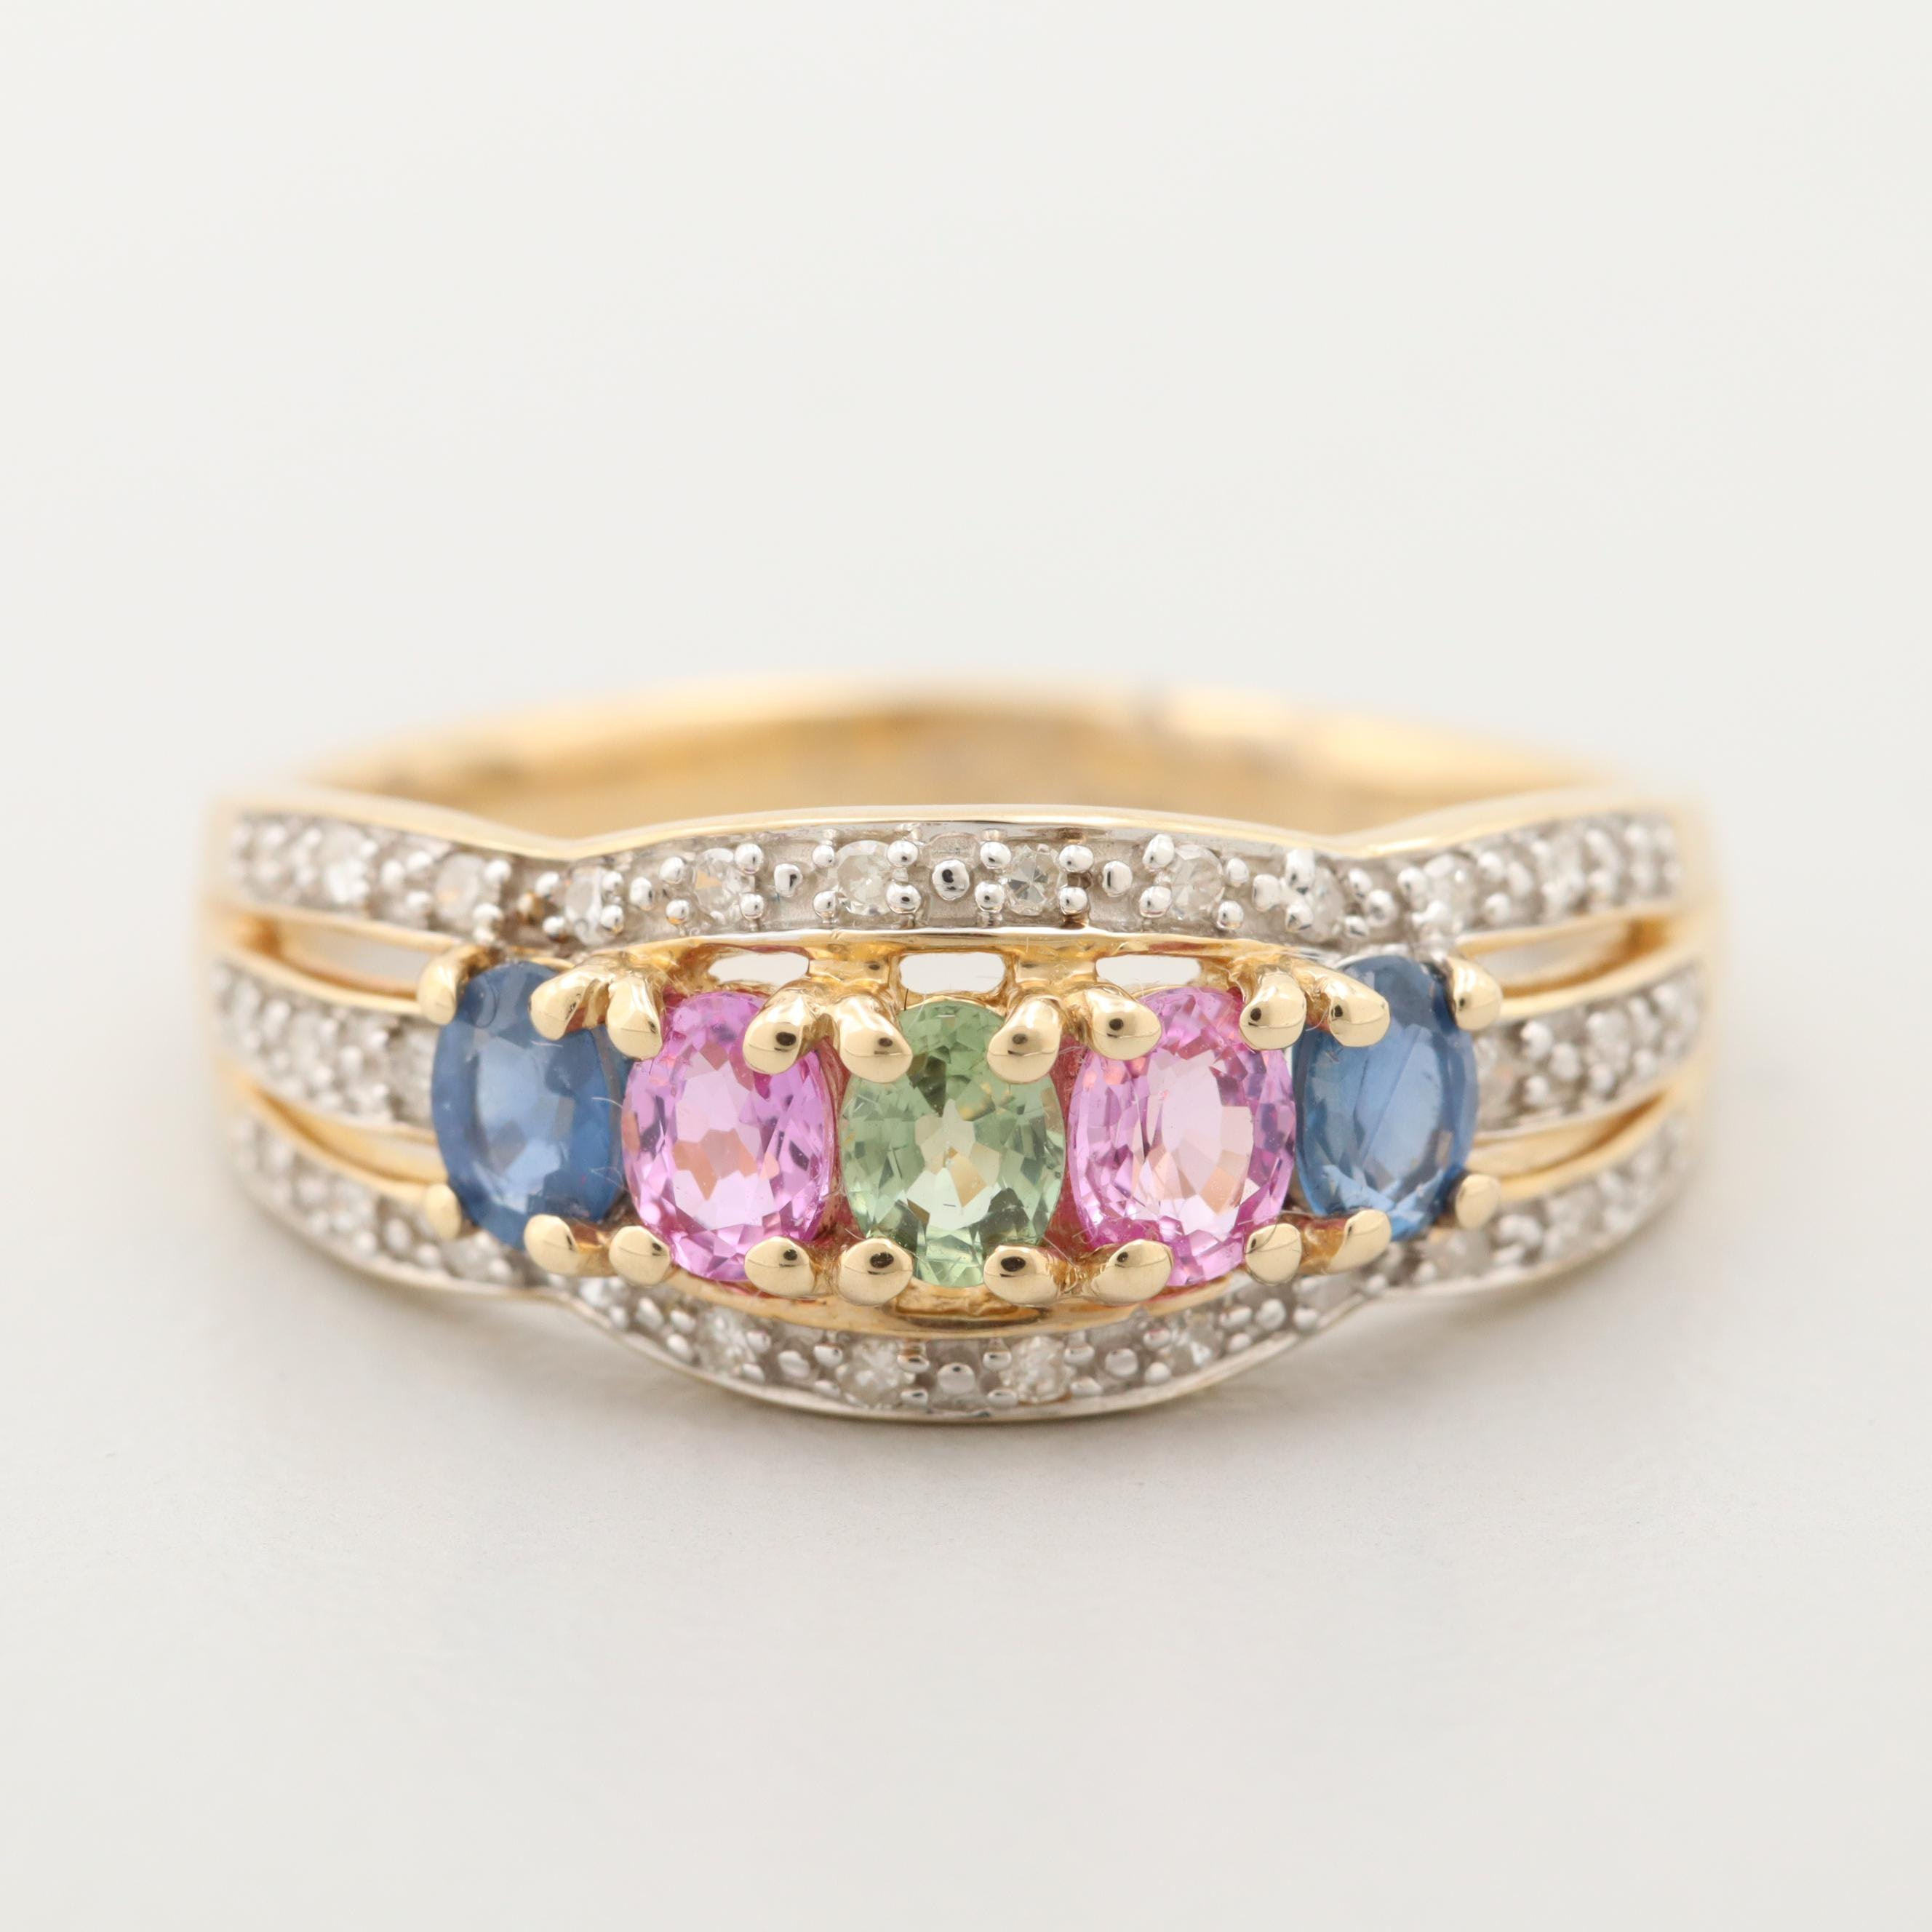 14K Yellow Gold Multi Colored Sapphire and Diamond Ring